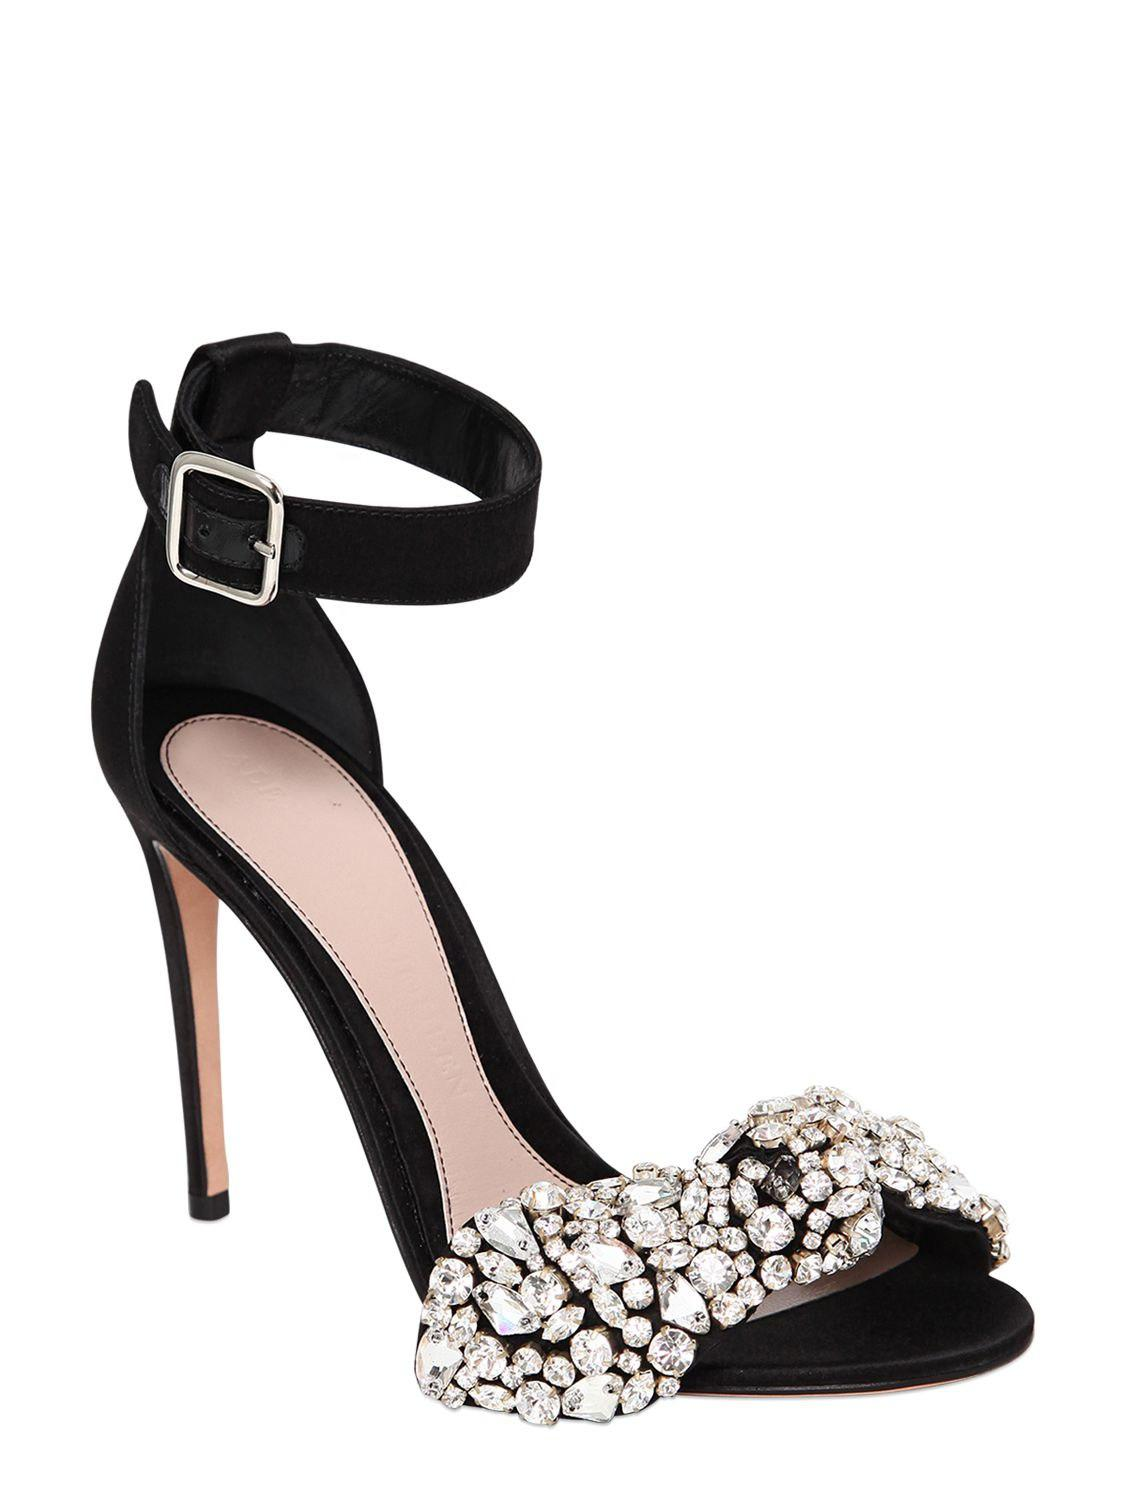 Alexander McQueen 105MM CRYSTAL BOW SATIN SANDALS r7EeN